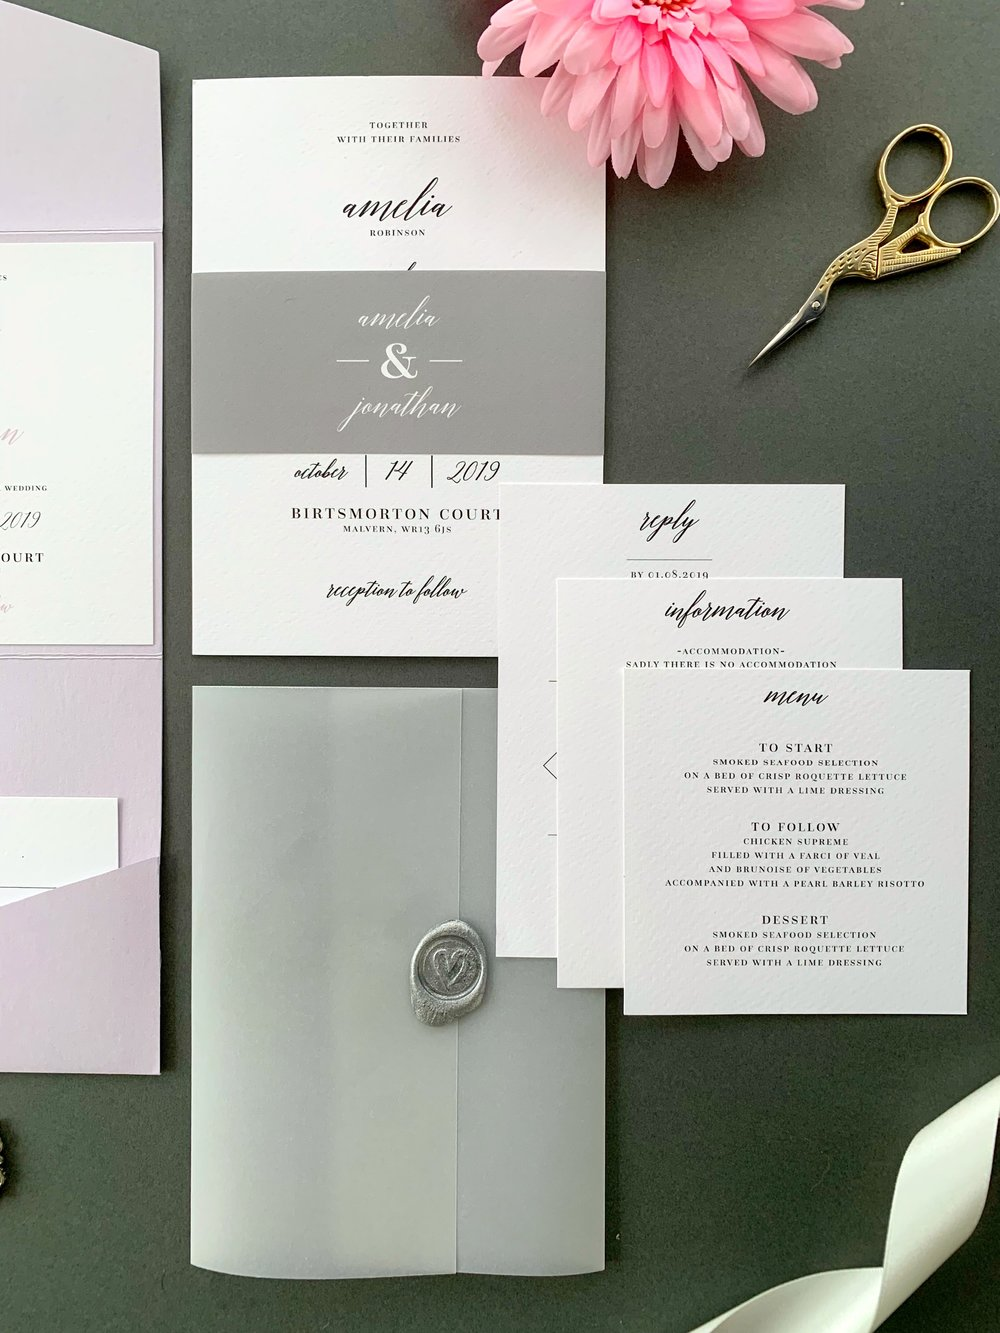 Westminster Invitation Suite in Jet Black and Nimble with Paper Belly band and metallic silver Wax Seal on Vellum Jacket